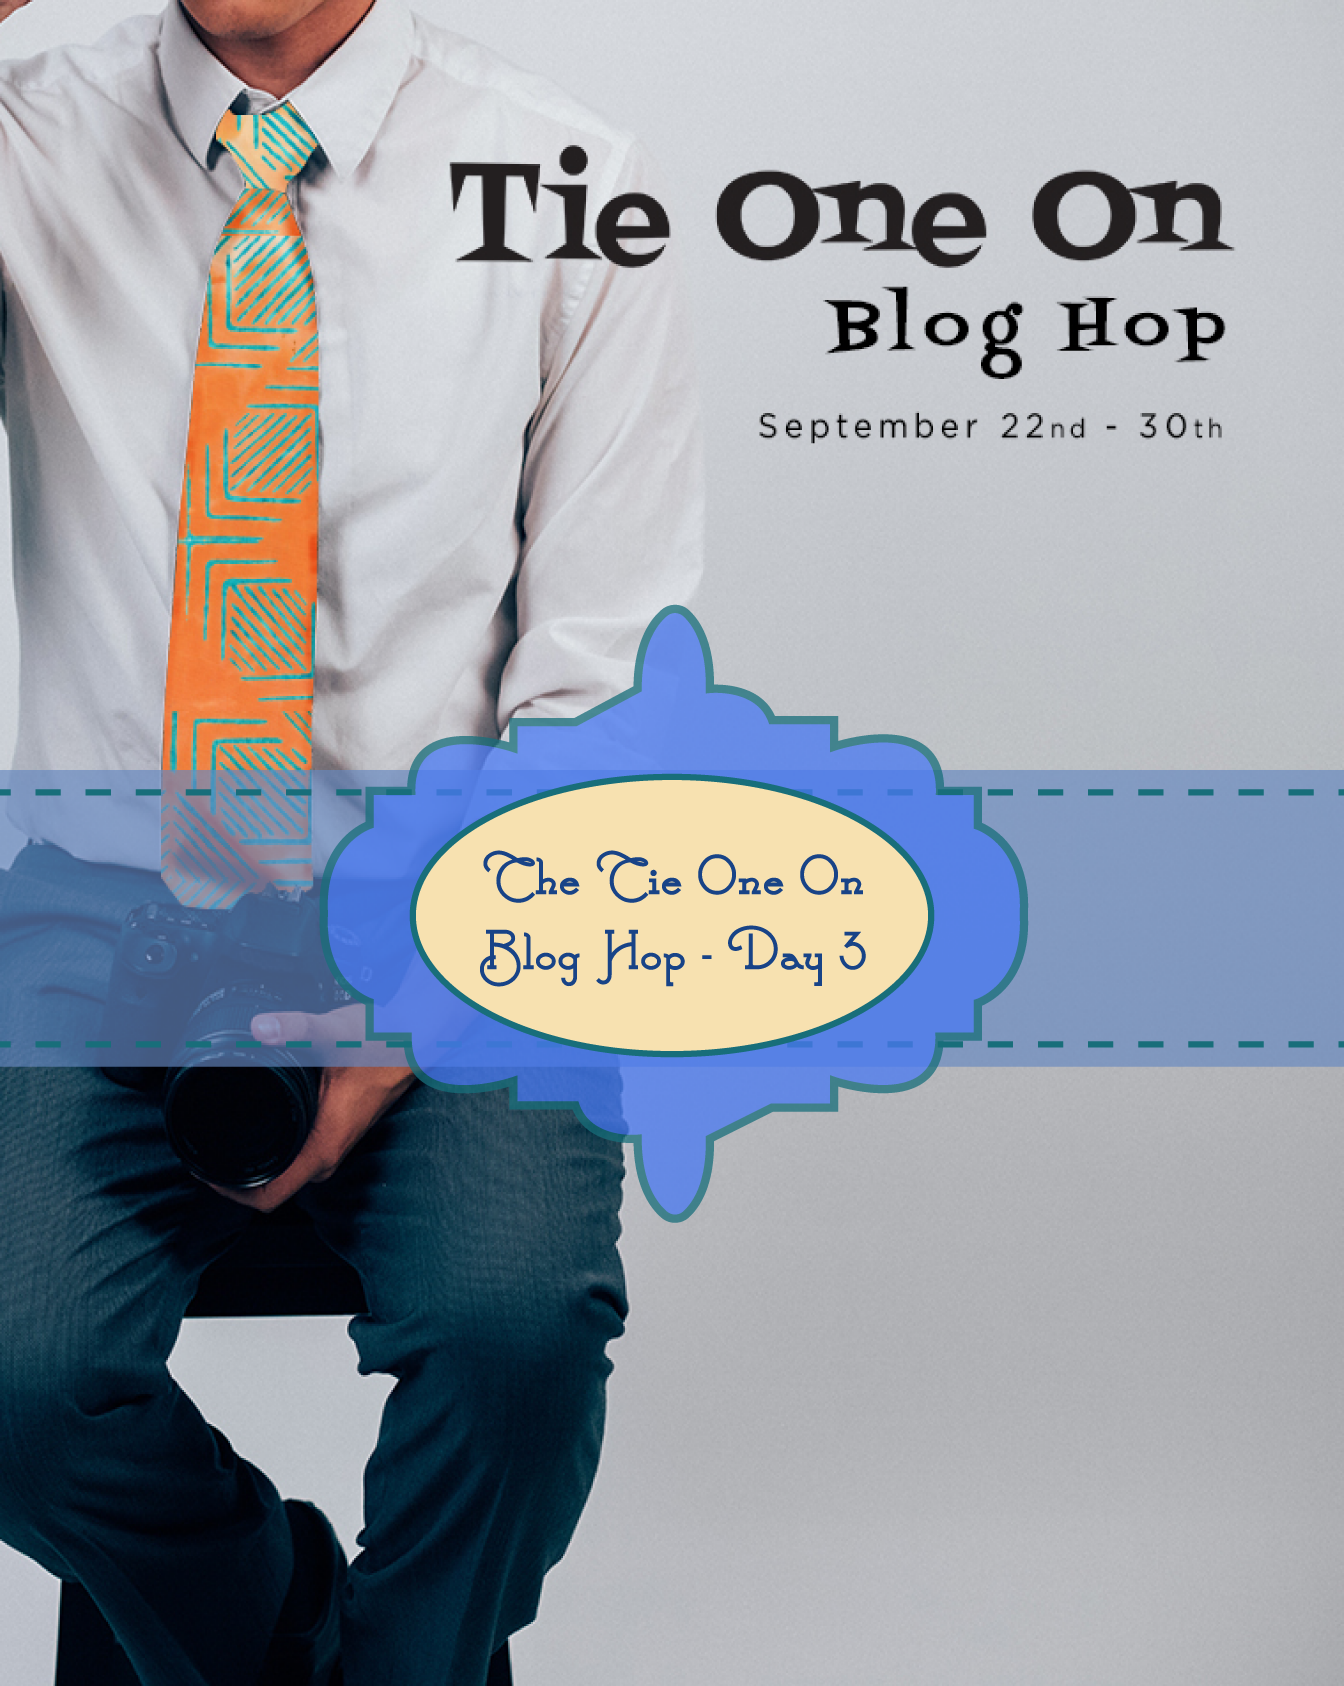 Tie One On Blog Hop Day 3